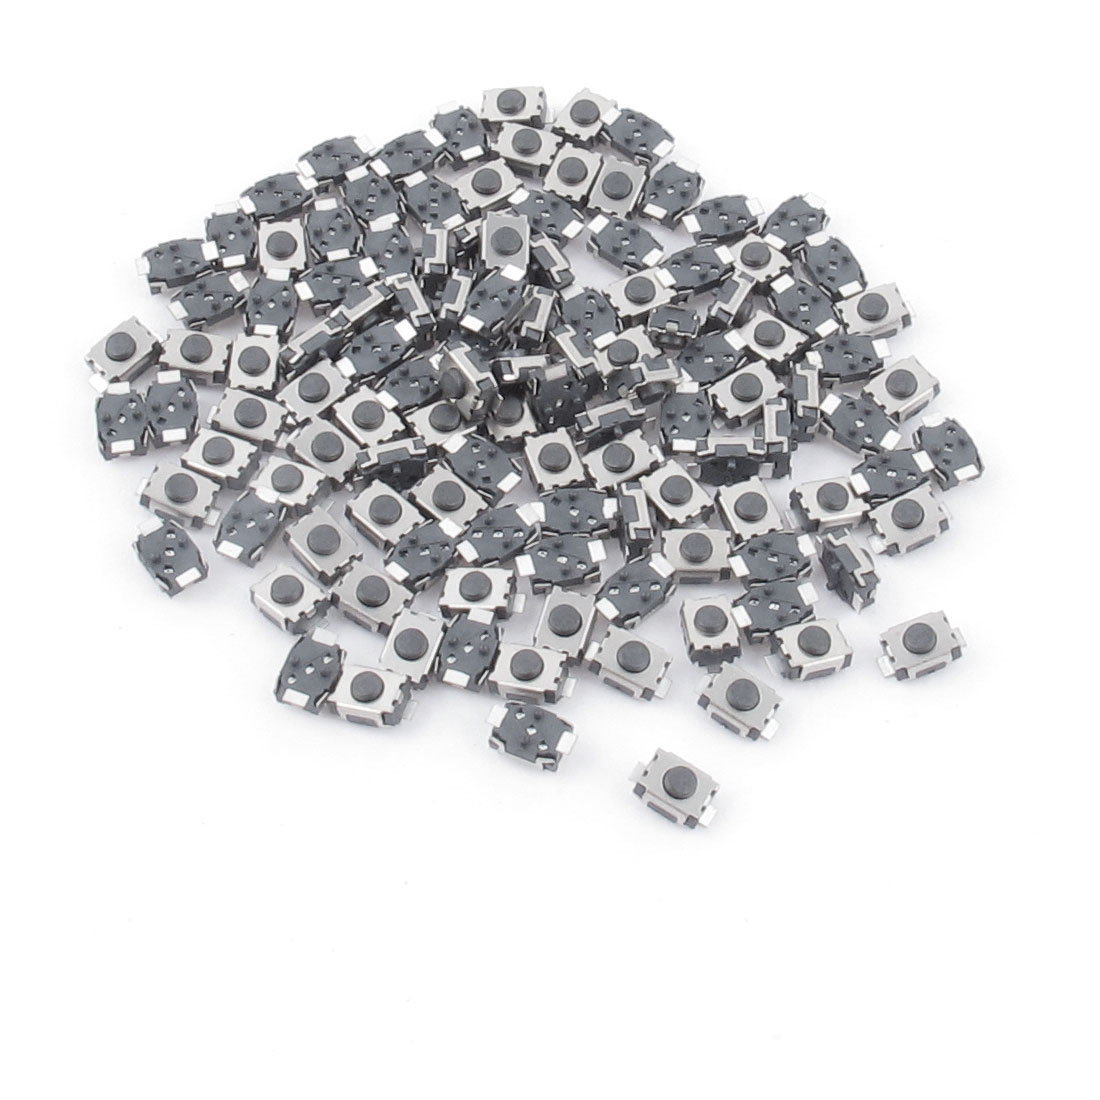 100Pcs 4x3x2mm Momentary 2 Pin Pushbutton Tactile Tact Switches